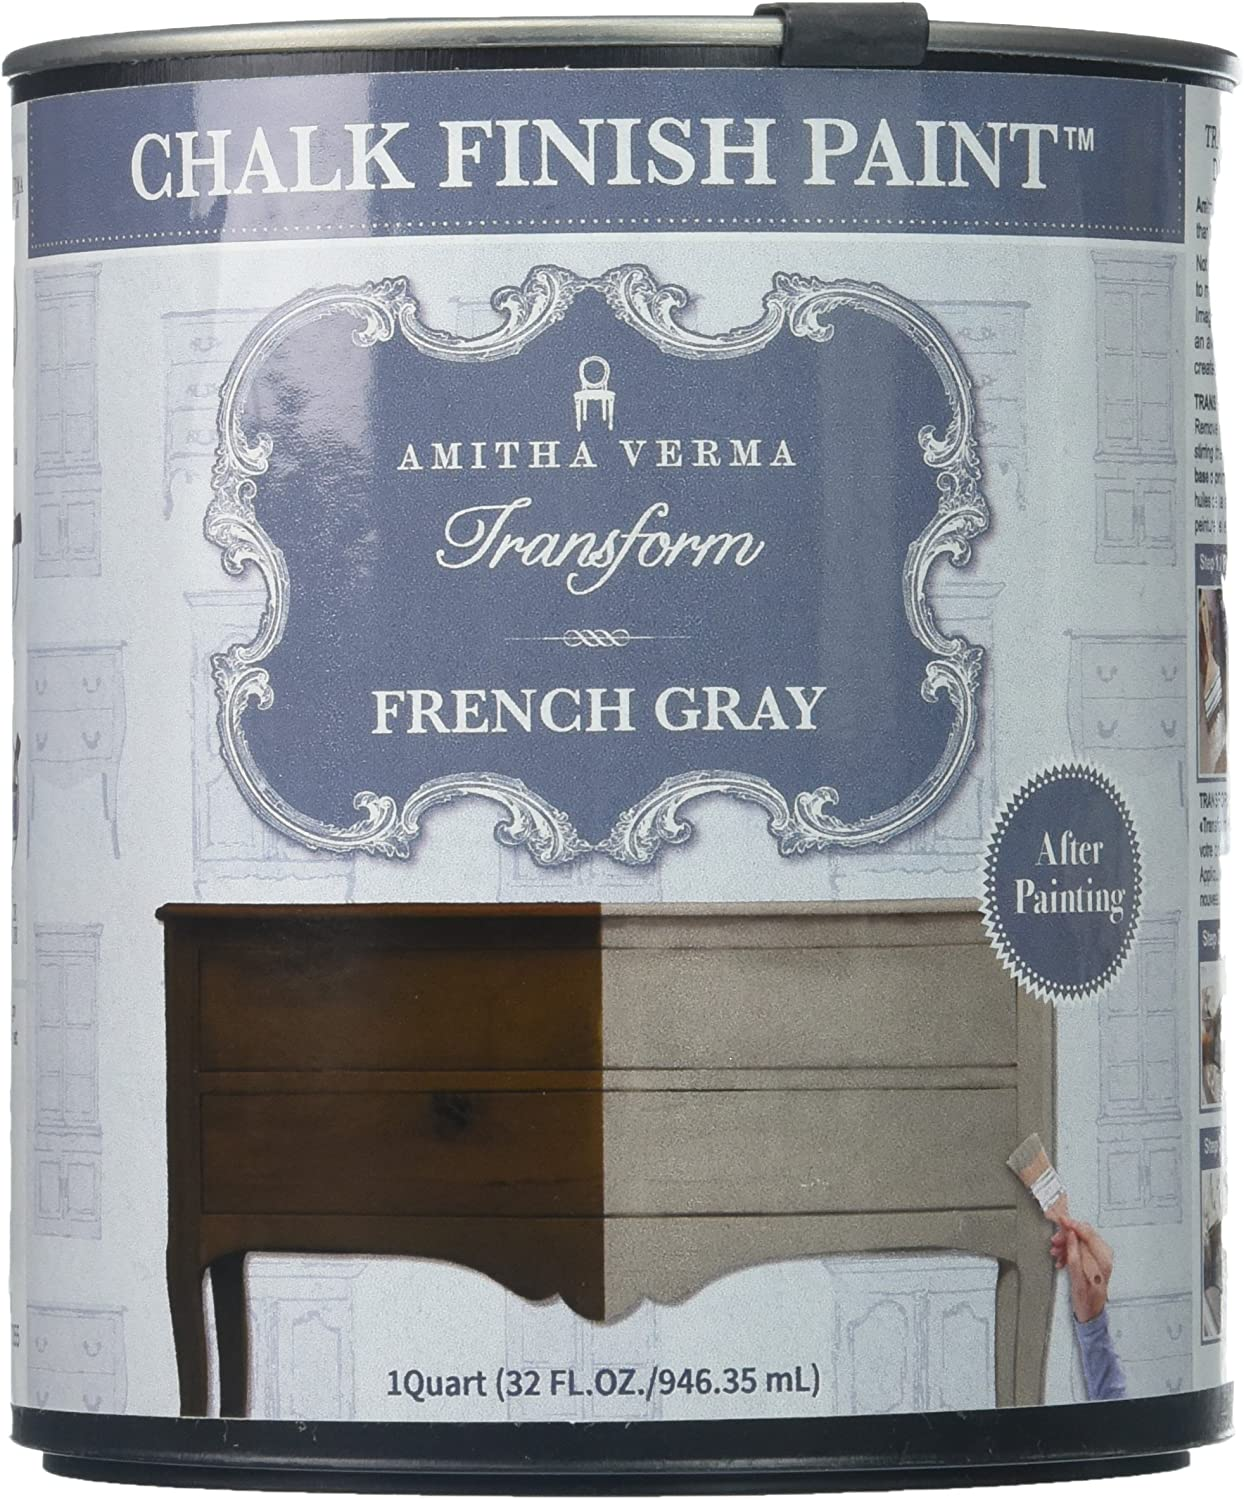 Amitha Verma Chalk Finish Paint, No Prep, One Coat, Fast Drying   DIY Makeover for Cabinets, Furniture & More, 1 Quart, (French Gray)